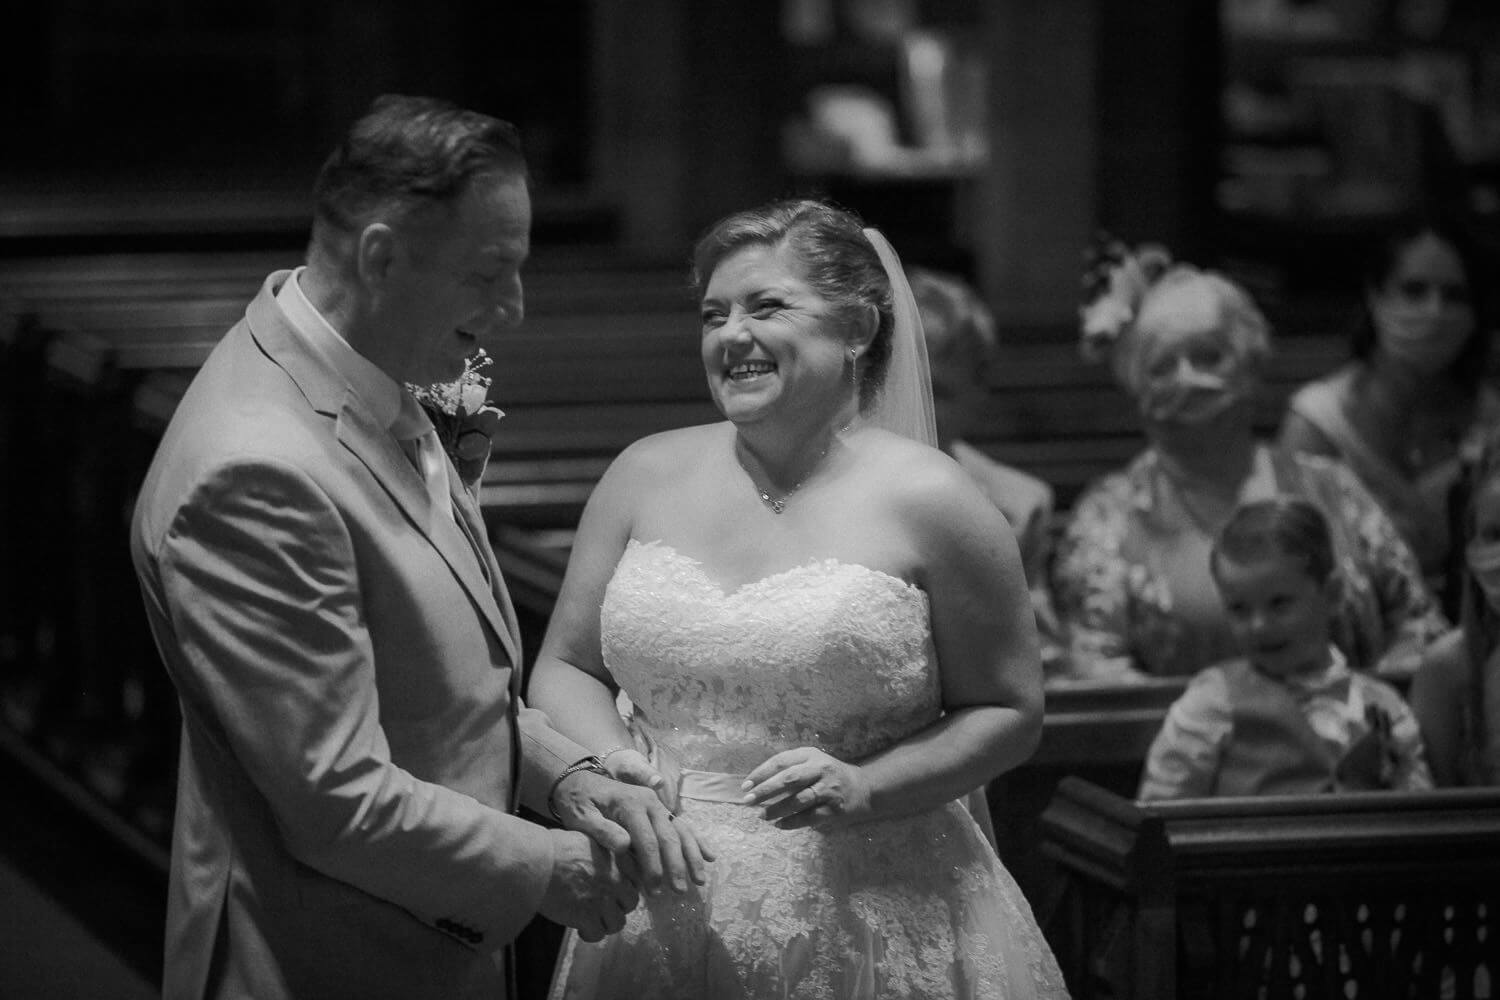 COVID WEDDING PHOTOGRAPHY AT THE WEST TOWER